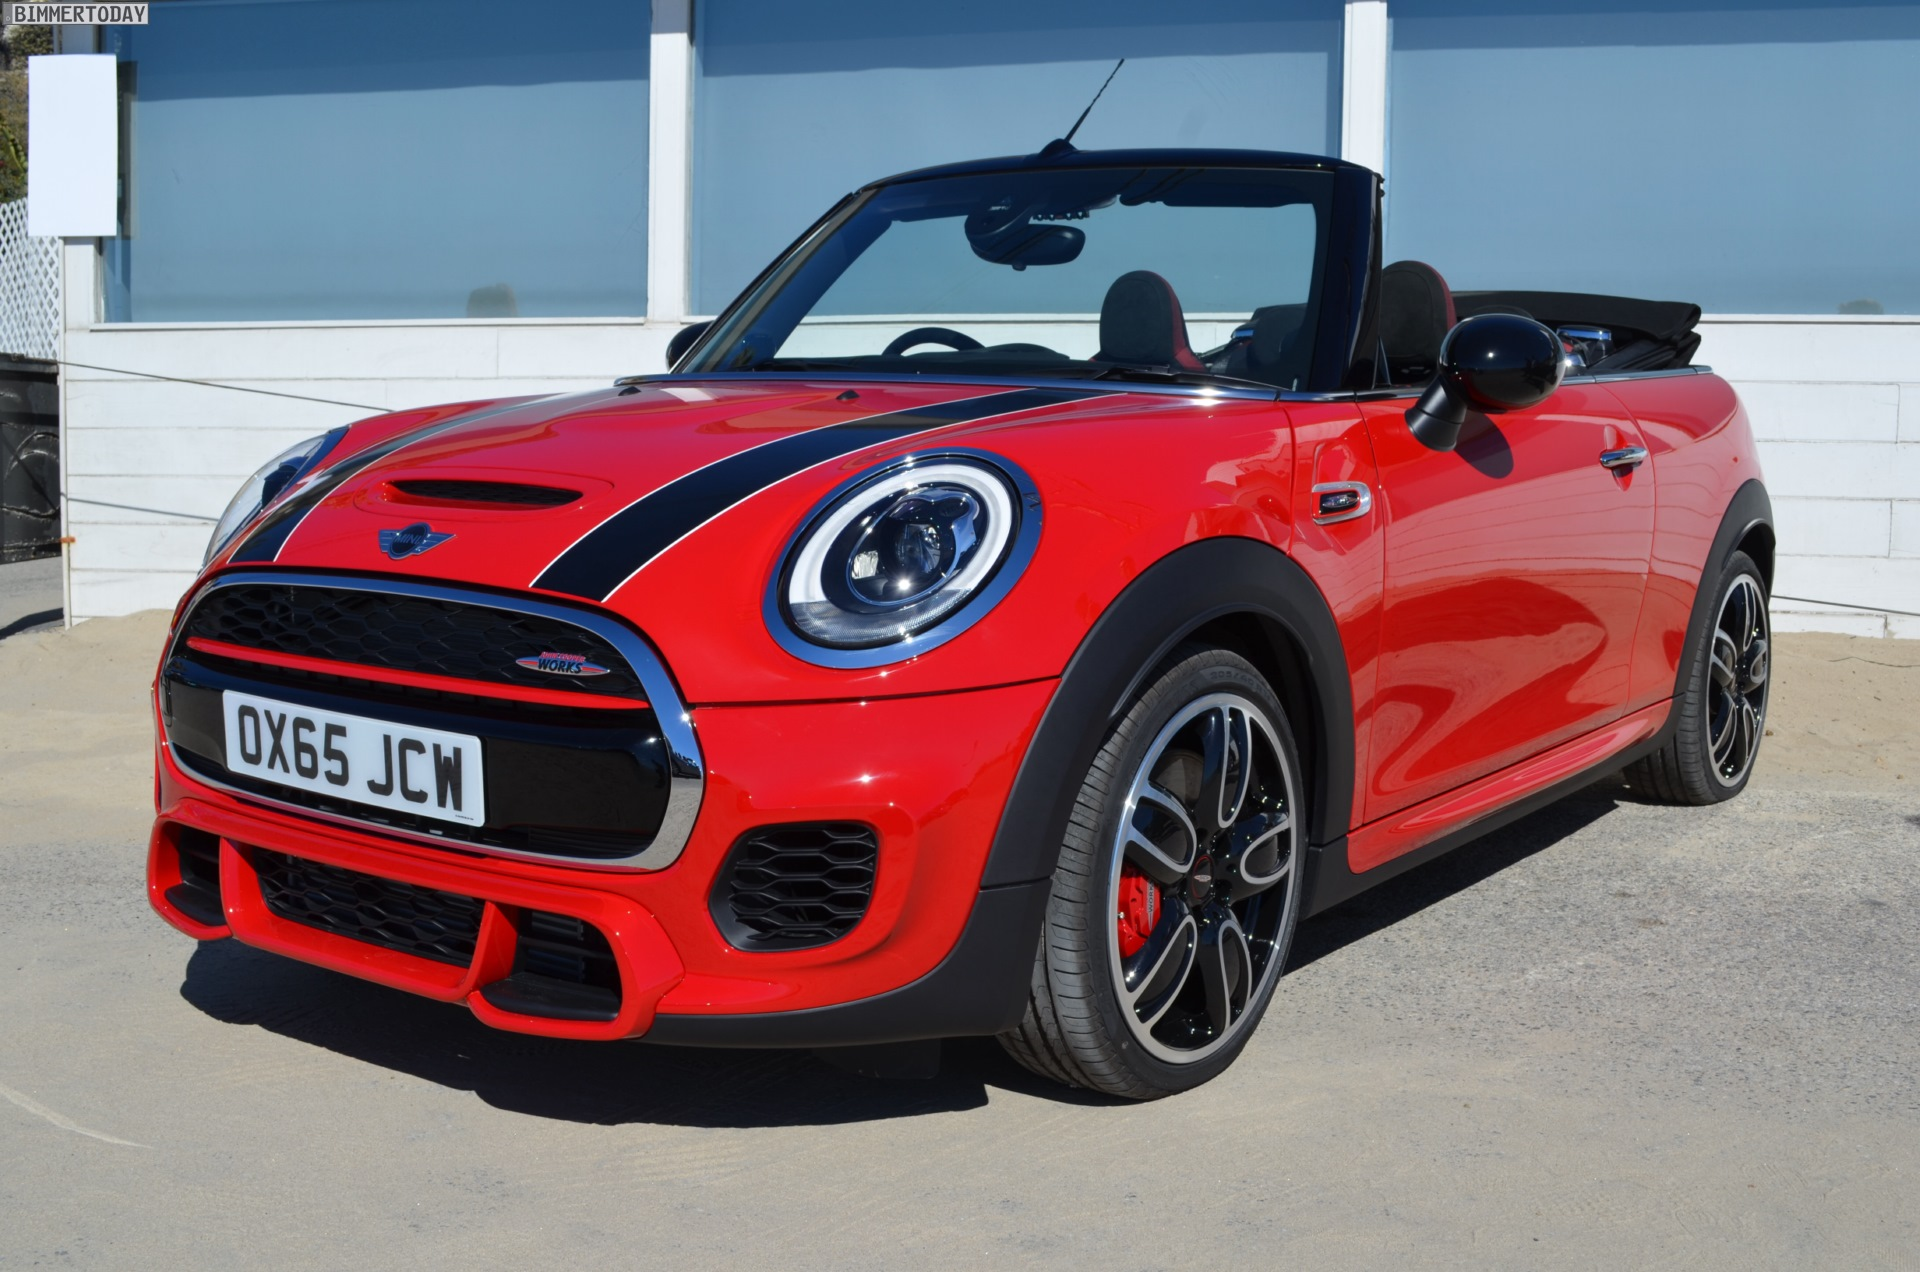 mini john cooper works cabrio f57 live fotos in chili red. Black Bedroom Furniture Sets. Home Design Ideas